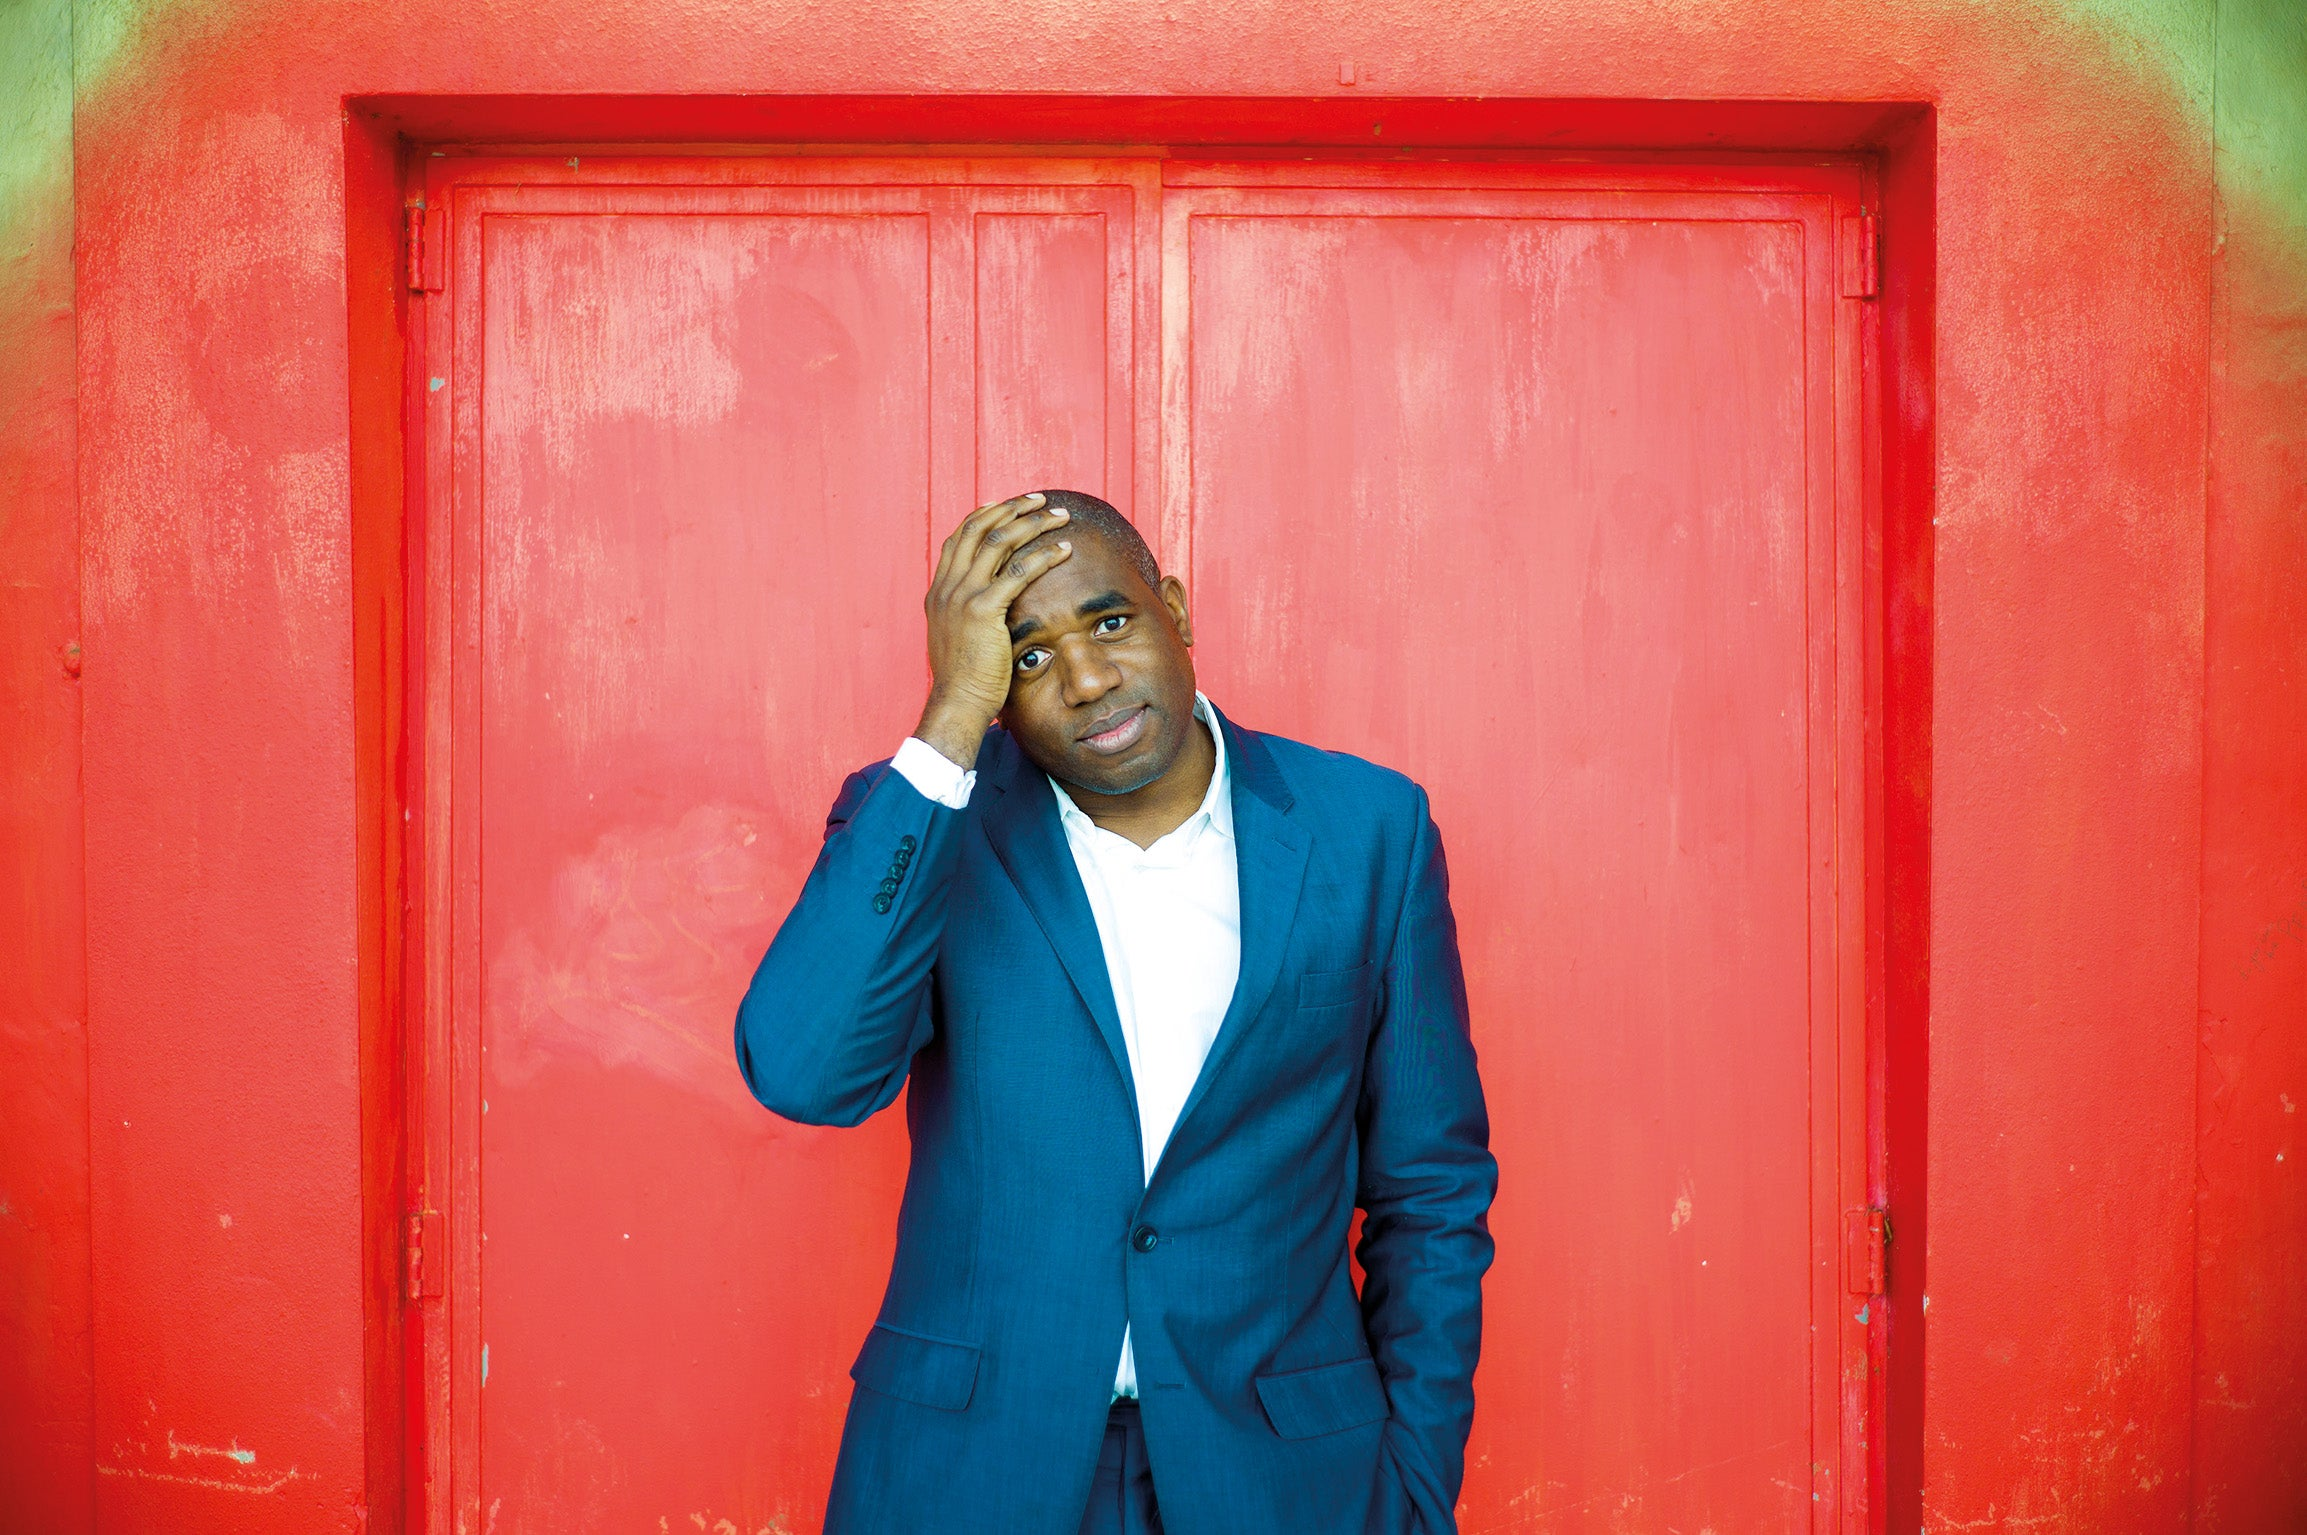 David Lammy's search for meaning